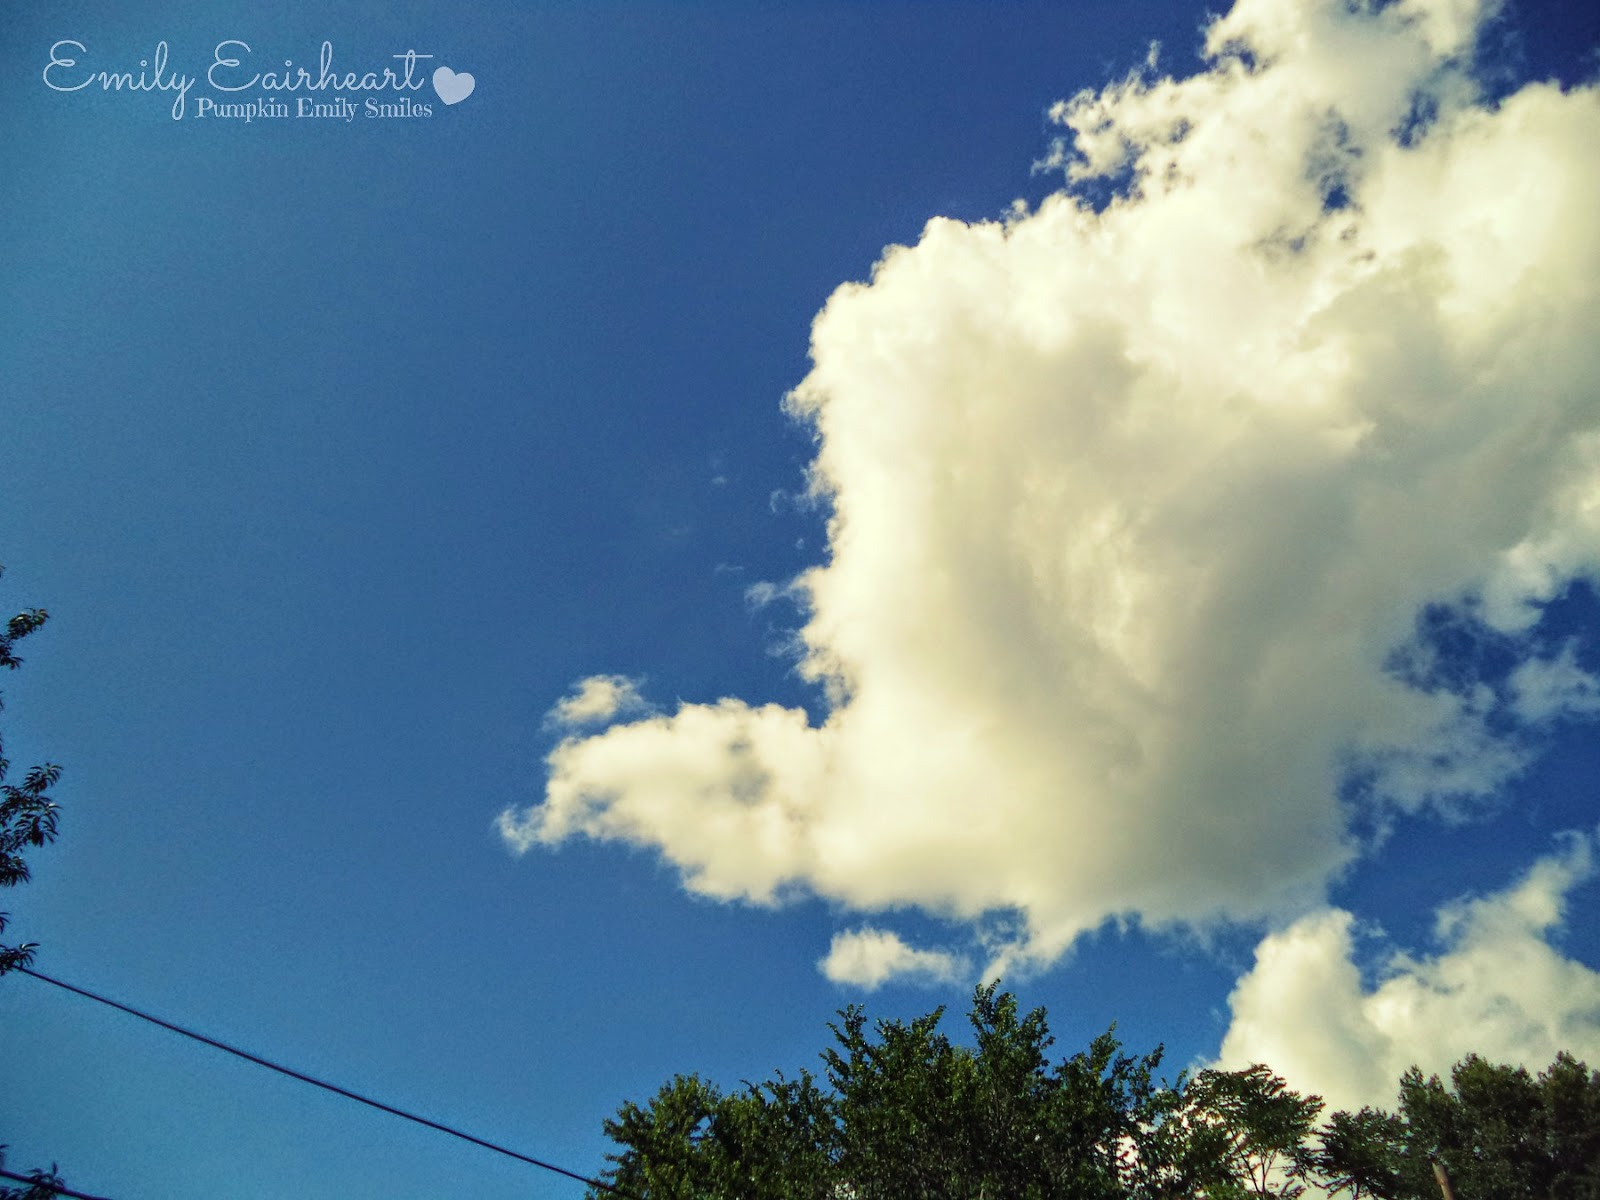 Clouds that look like a turkey,swan, and a baby elephant.